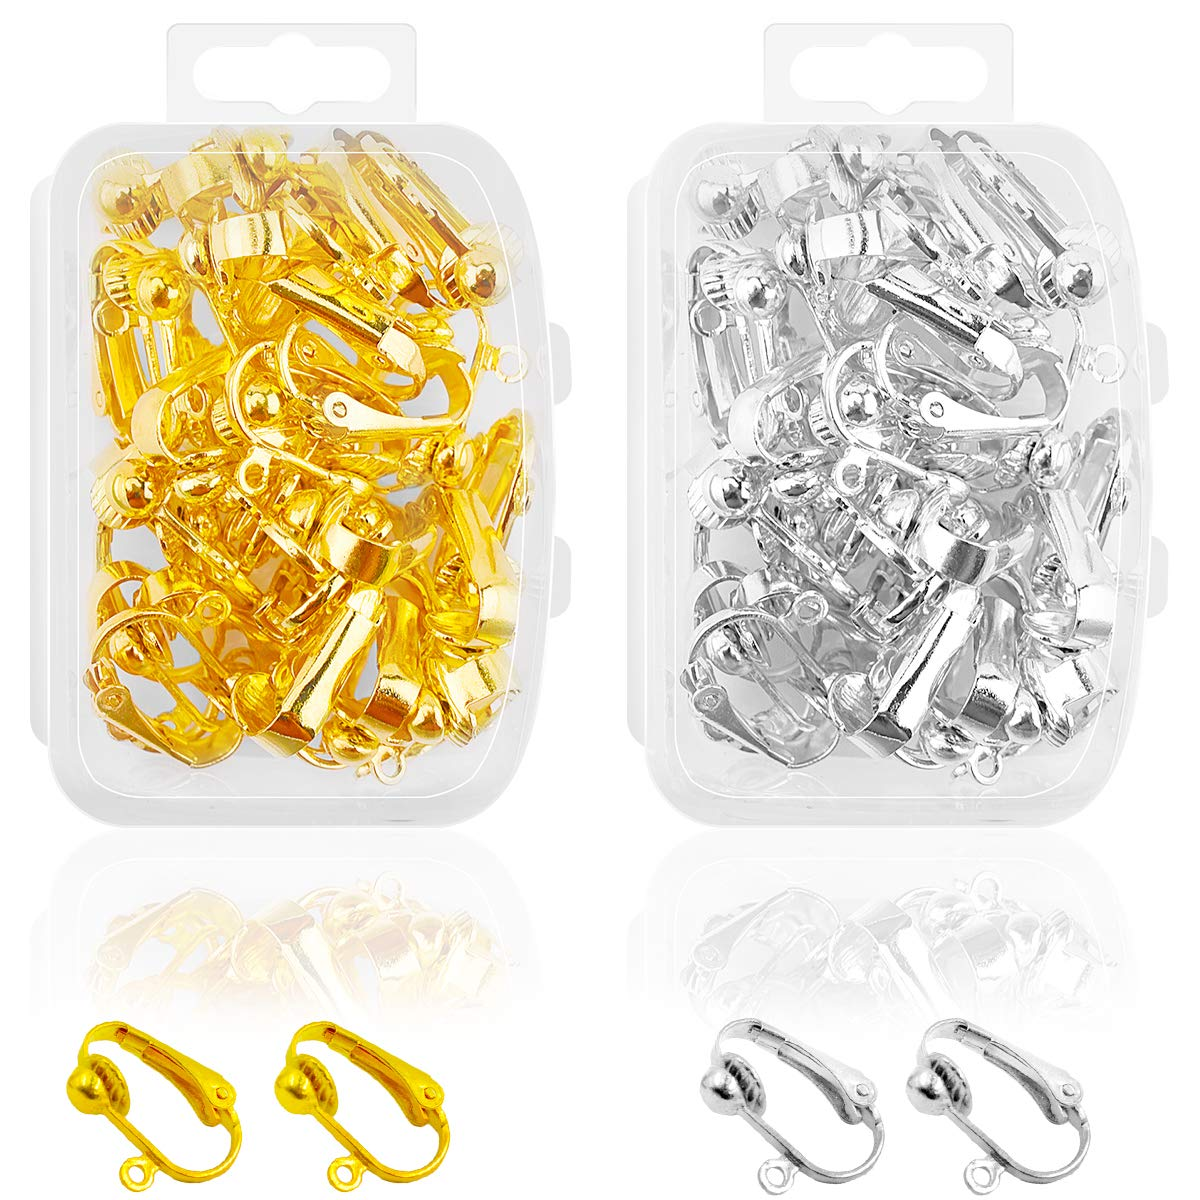 Jewelry Making Supplies Jewelry Findings Kit Supplies Jump Rings Lobster Clasp for Girl and Adults DIY Jewrlry Making